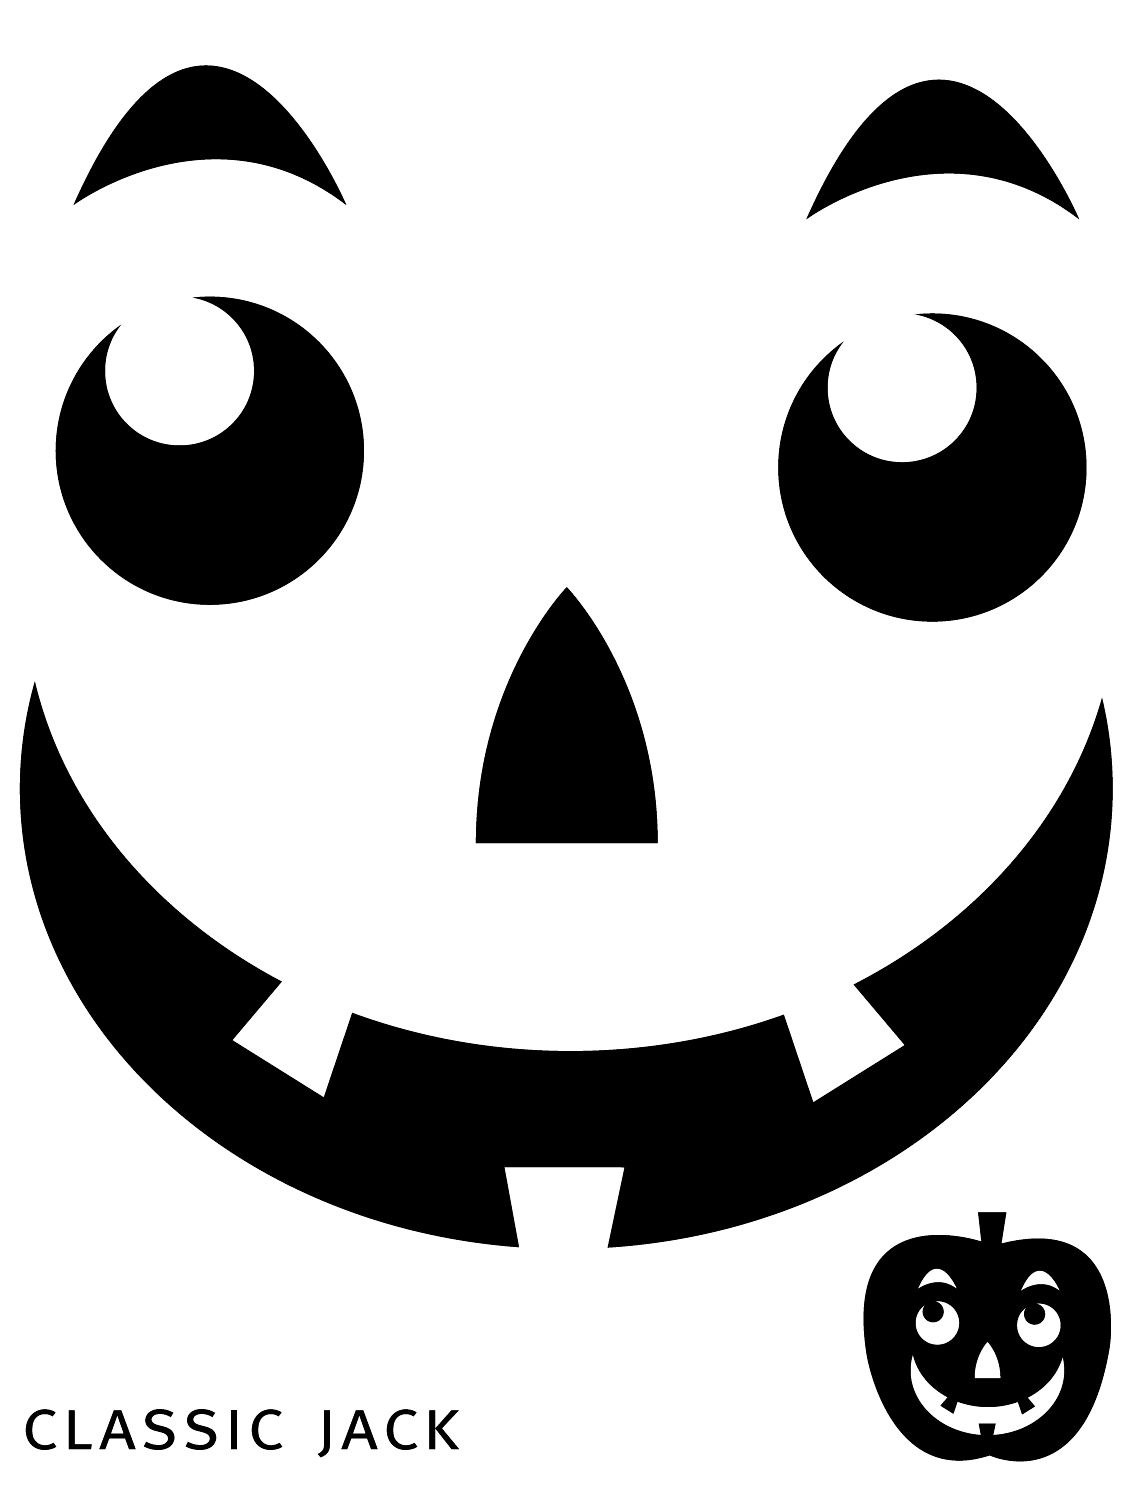 Jack O Lantern Face Svg : lantern, Printable, Funny, Lantern, Stencils, Patterns, Halloween, Stencils,, Lanterns,, Faces